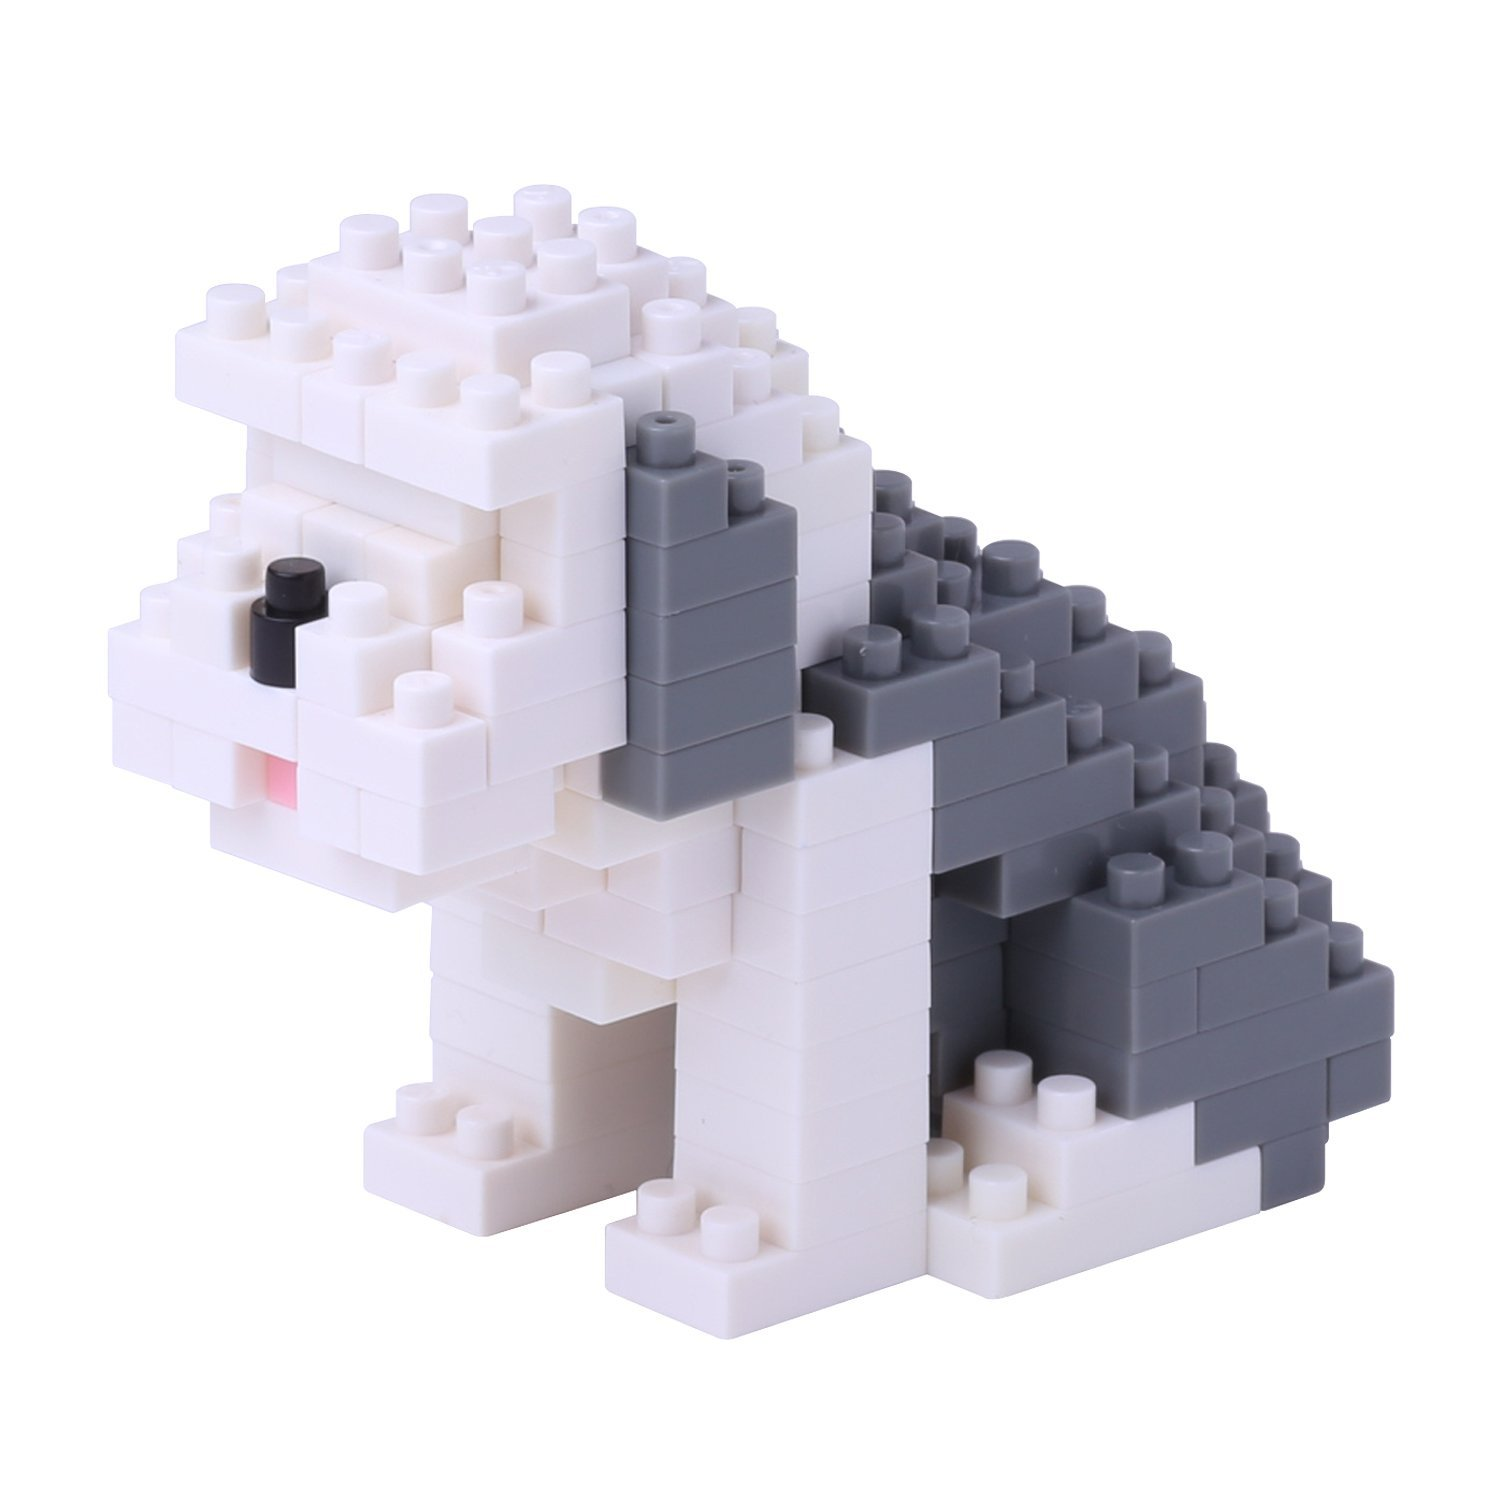 Nanoblock Old English Sheep Dog Building Kit, Officially Licensed by Kawada By Kawada by